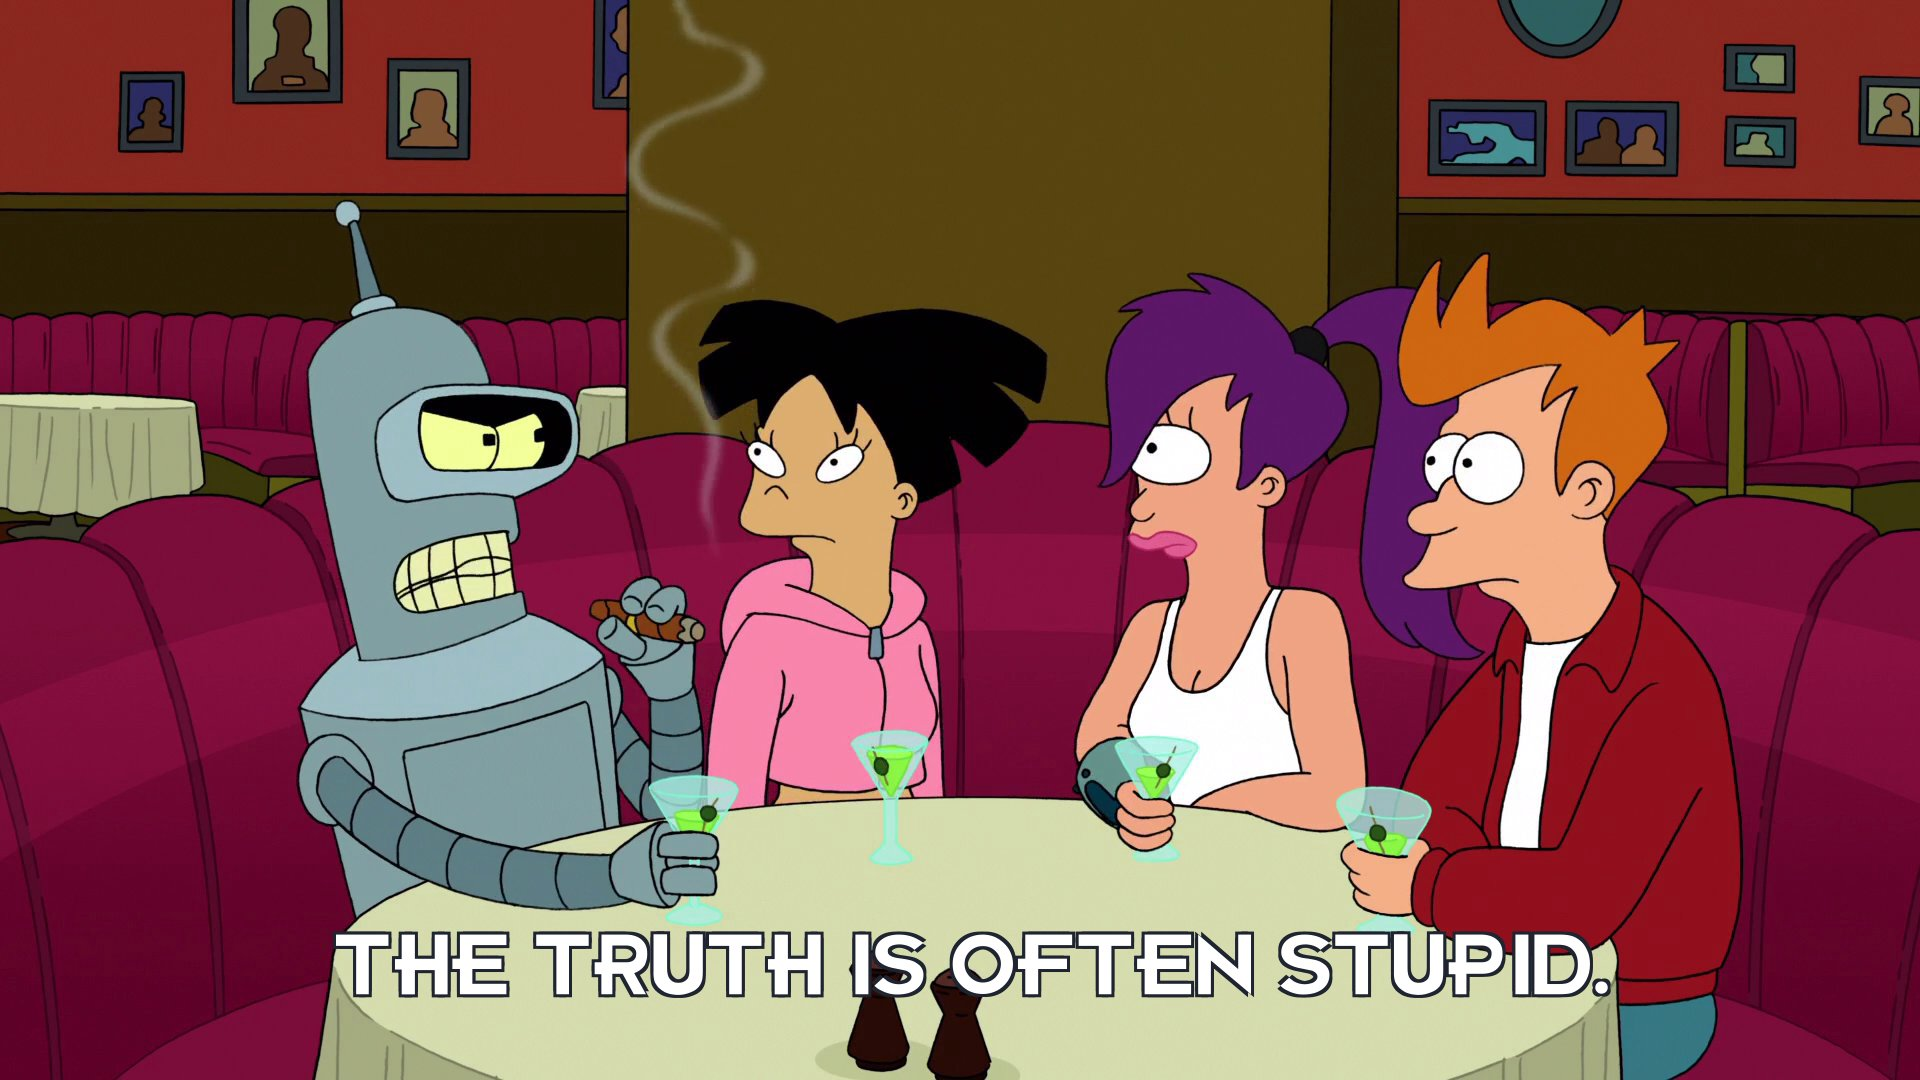 Bender Bending Rodriguez: The truth is often stupid.